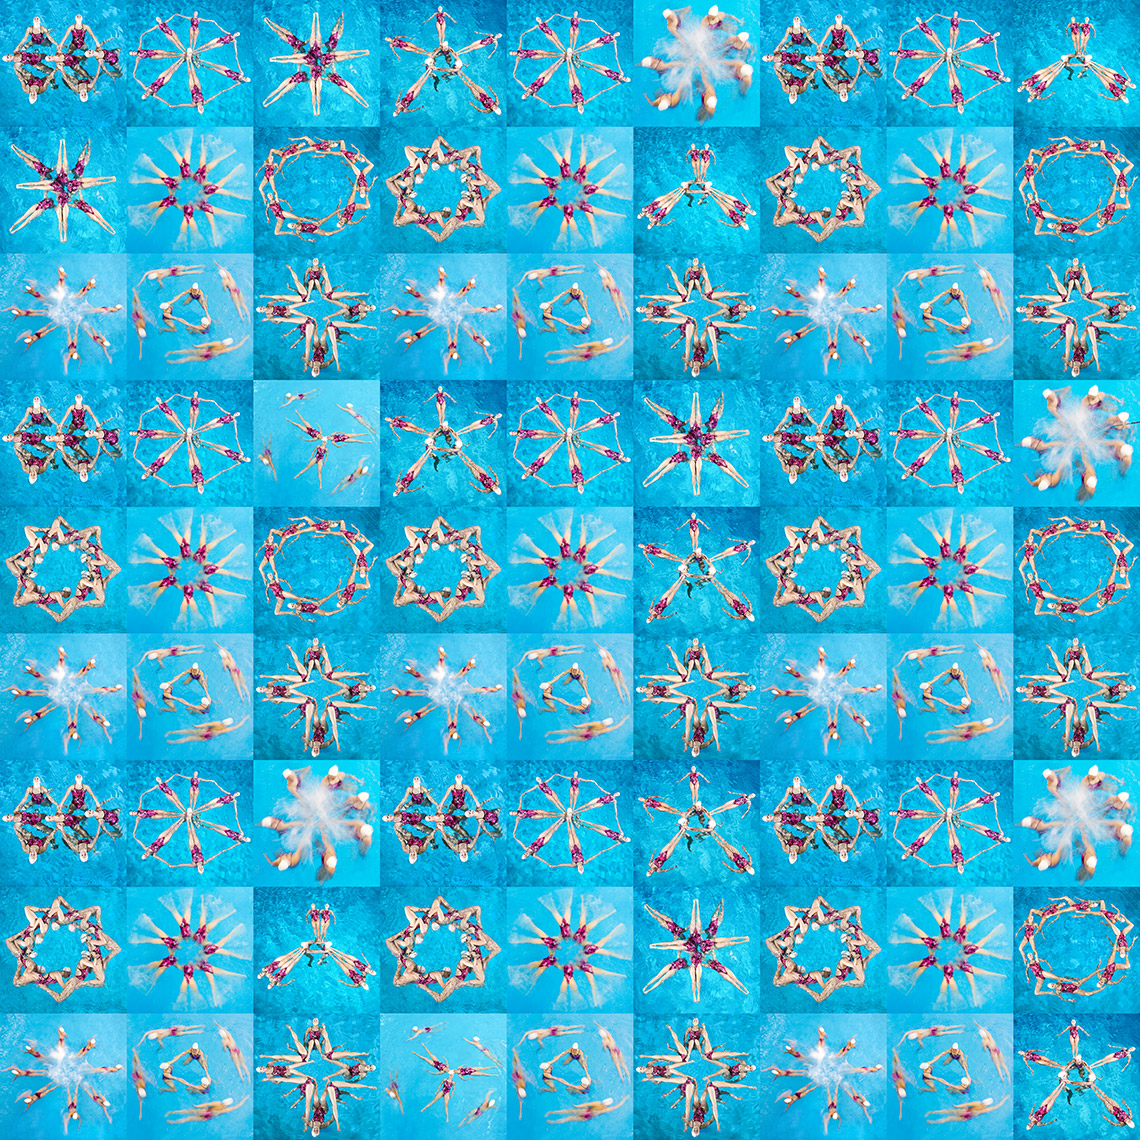 Total 81 Panel Swimmers Kaleidoscope